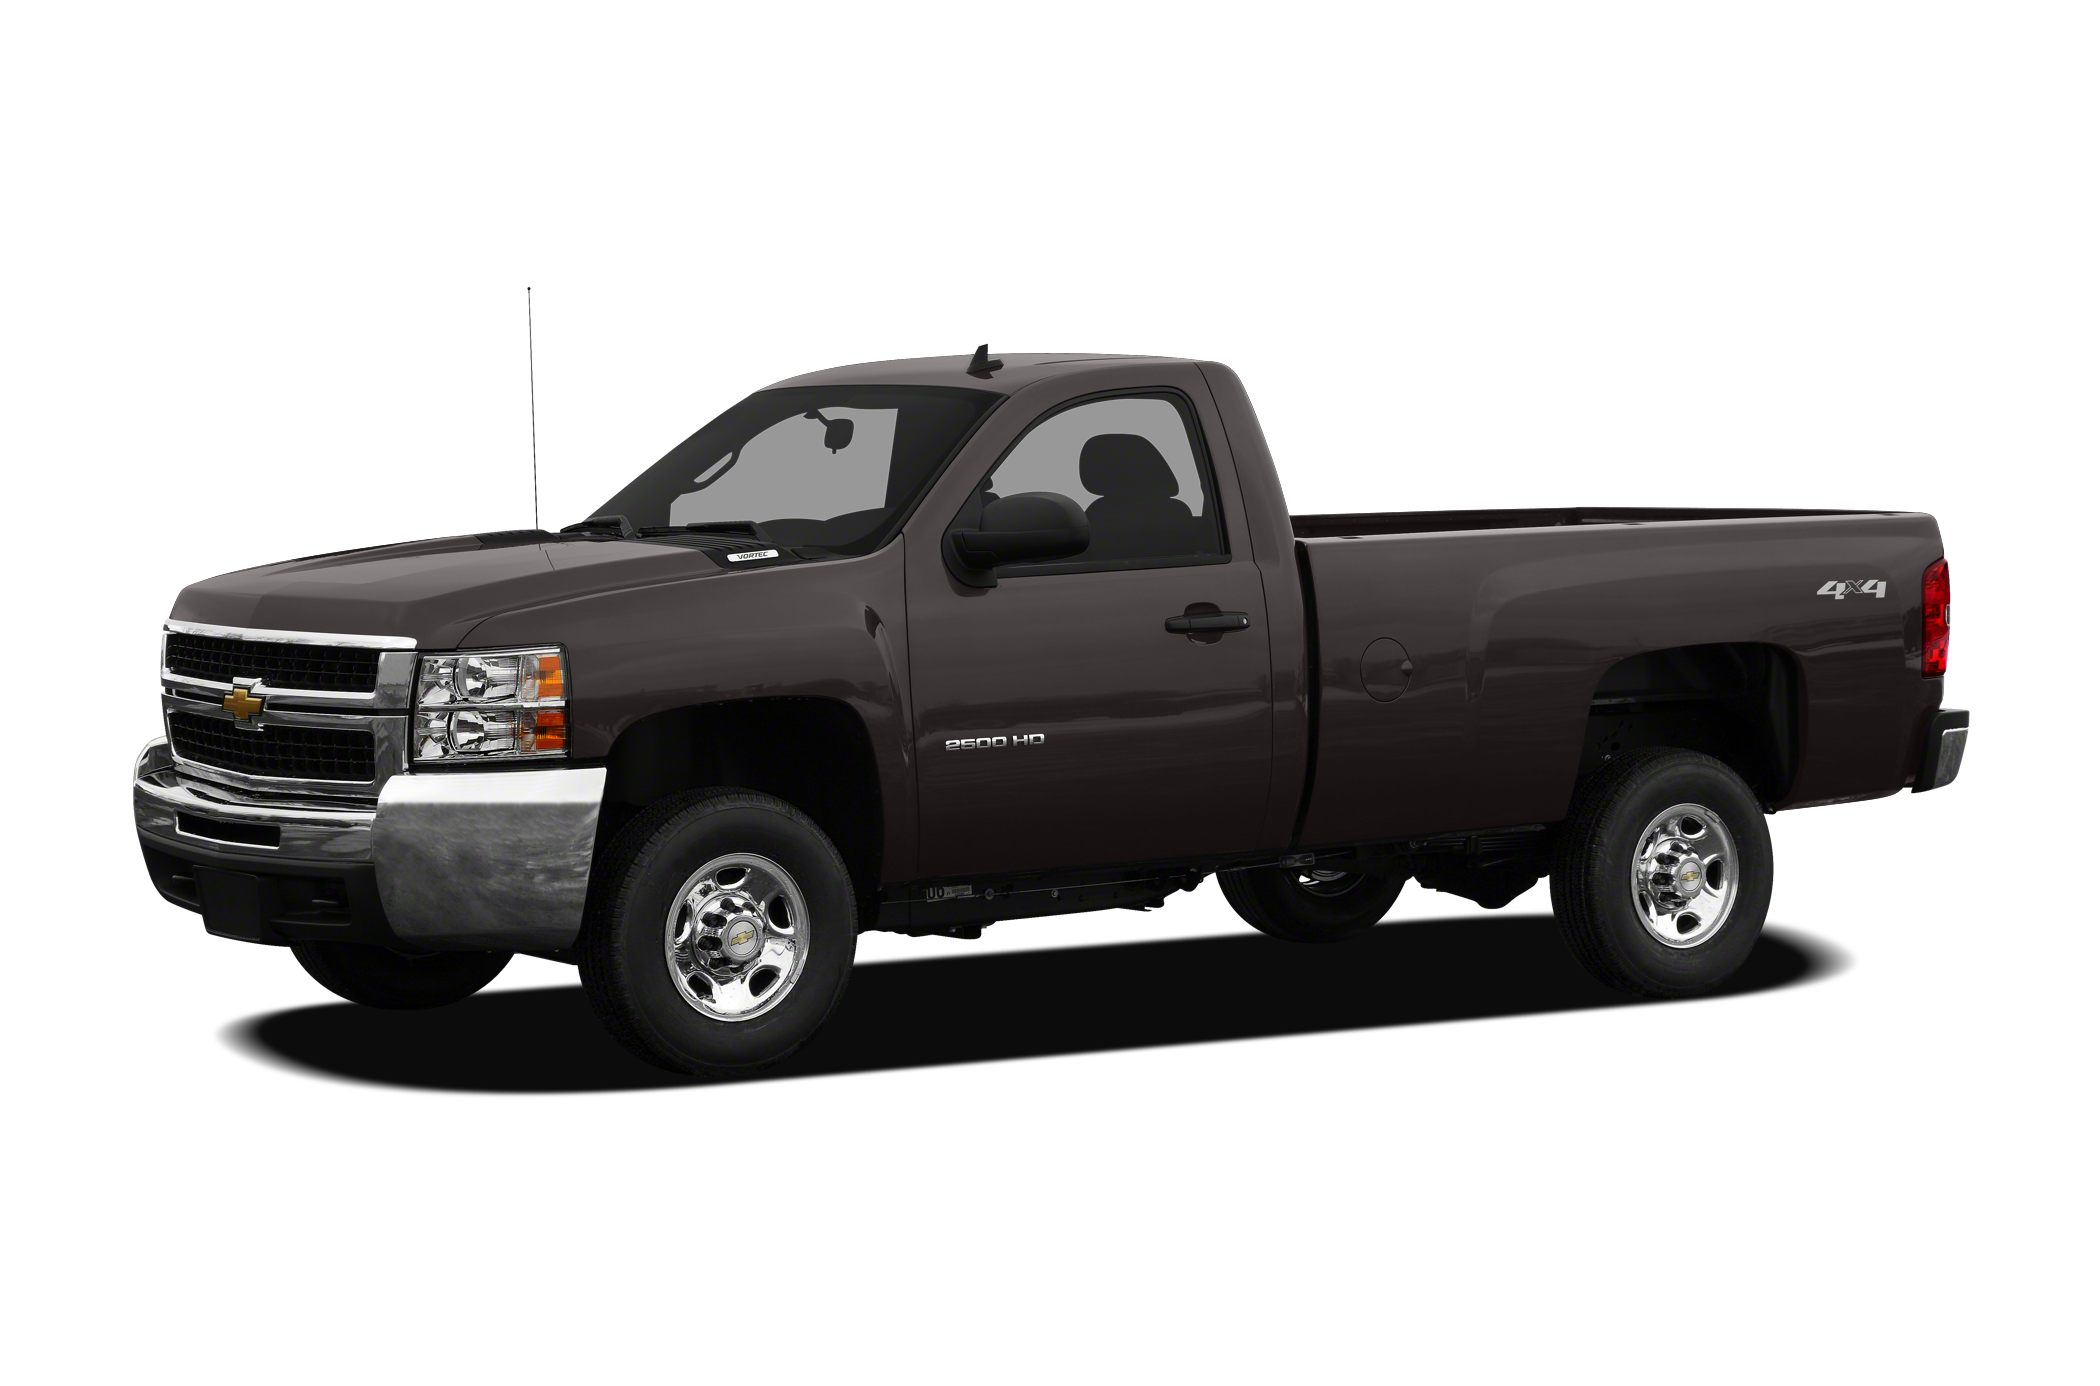 2010 Chevrolet Silverado 2500 LT Crew Cab Pickup for sale in Smyrna for $36,900 with 66,638 miles